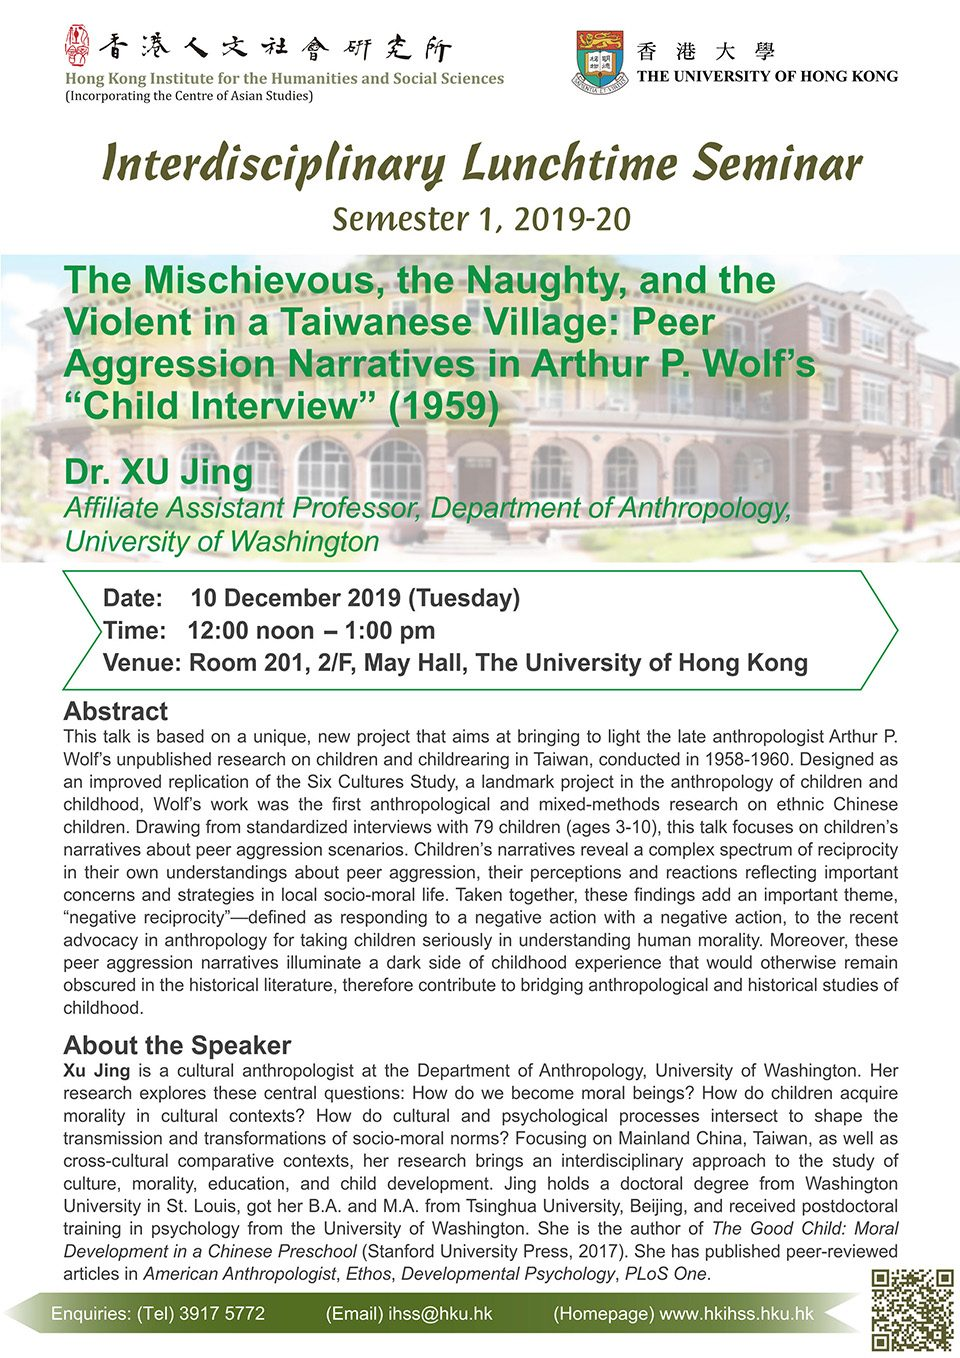 """Interdisciplinary Lunchtime Seminar on """"The Mischievous, the Naughty, and the Violent in a Taiwanese Village: Peer Aggression Narratives in Arthur P. Wolf's """"Child Interview"""" (1959)"""" by Dr. Xu Jing (December 10, 2019)"""